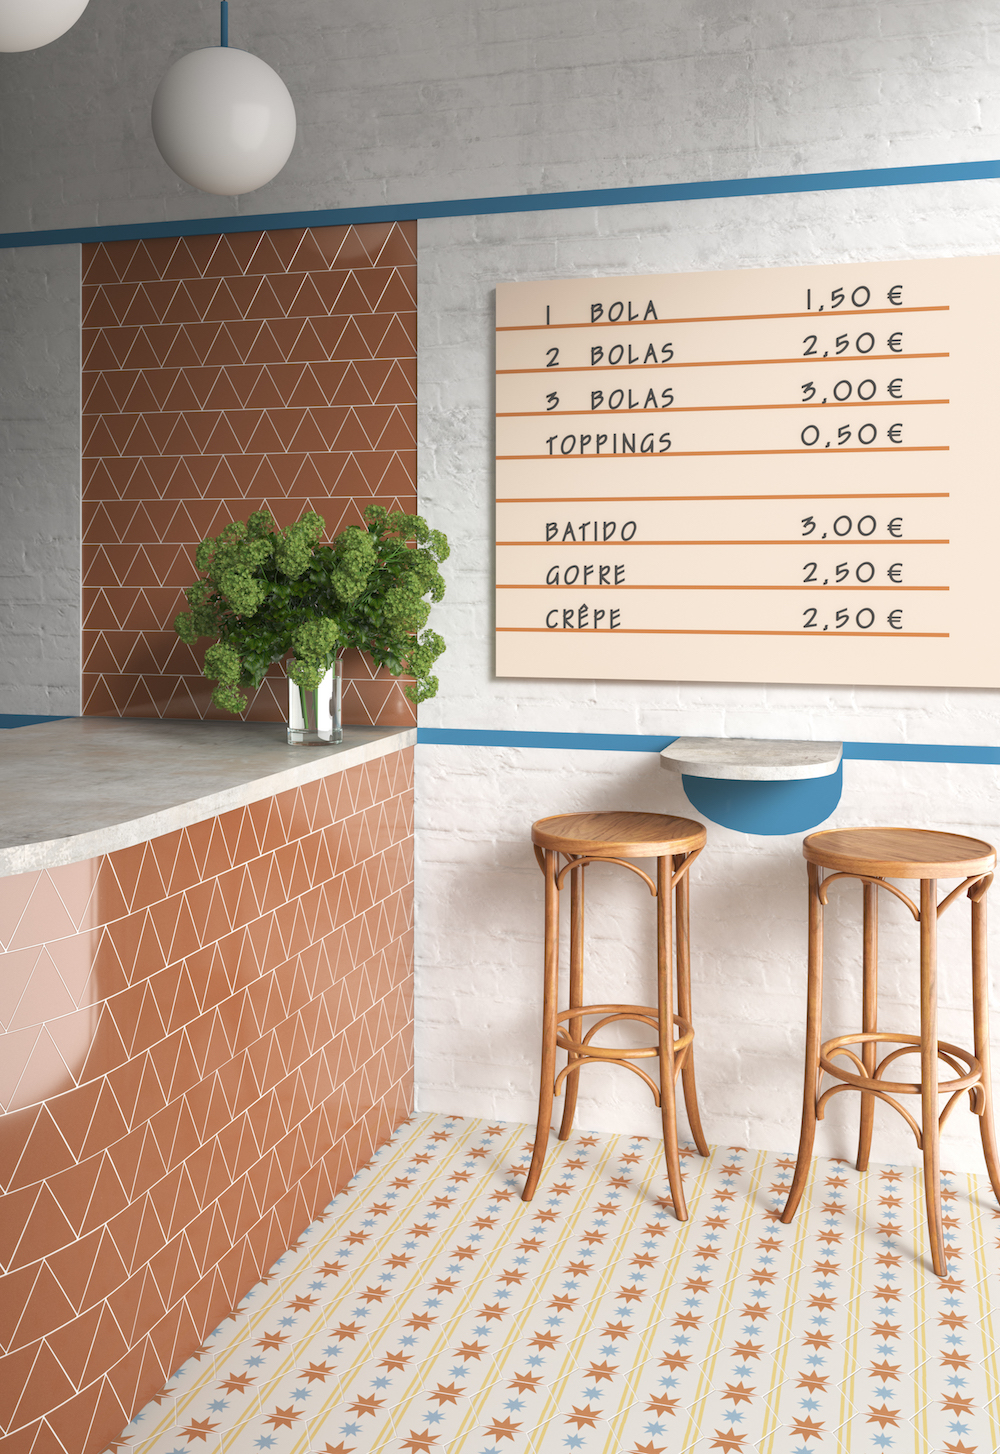 Image caption: Colourful Trivial by STD Architectural Tiles